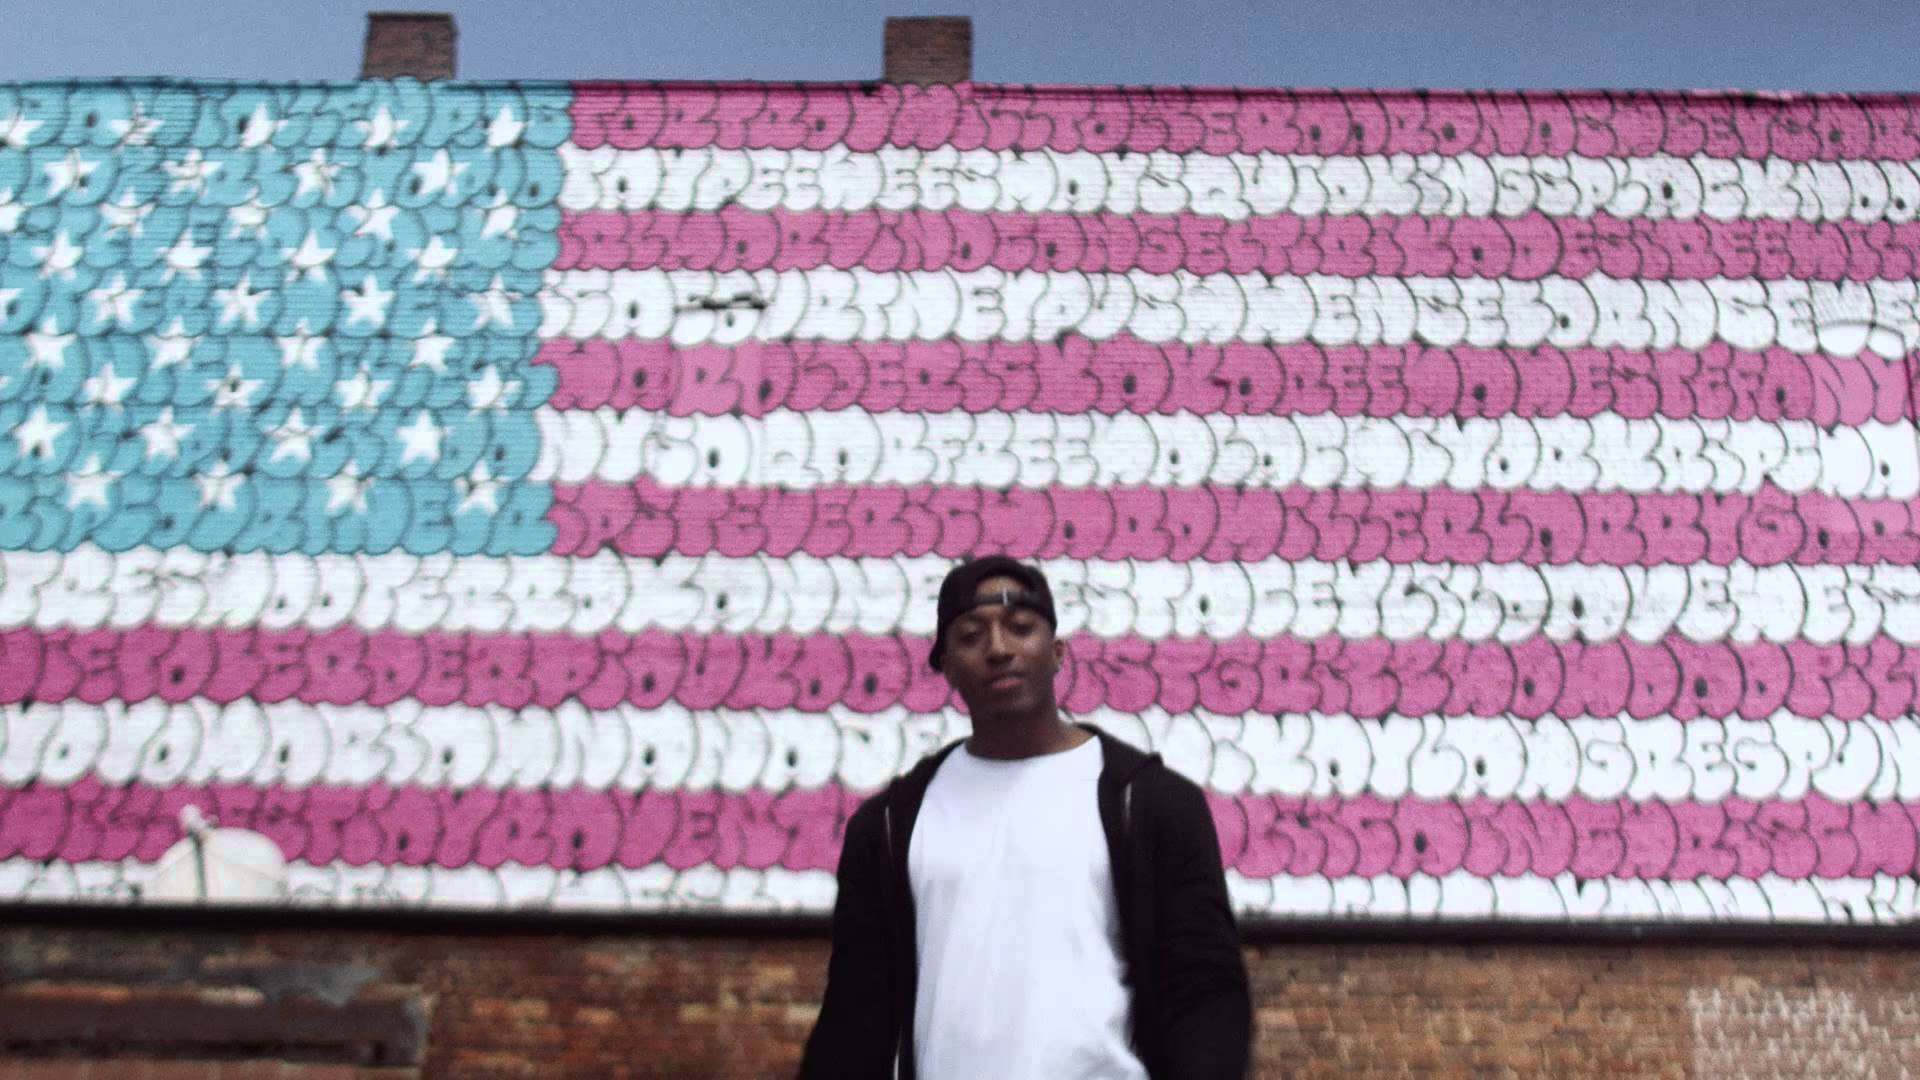 """New Video] Lecrae – """"Welcome to America"""" - Love This Track"""